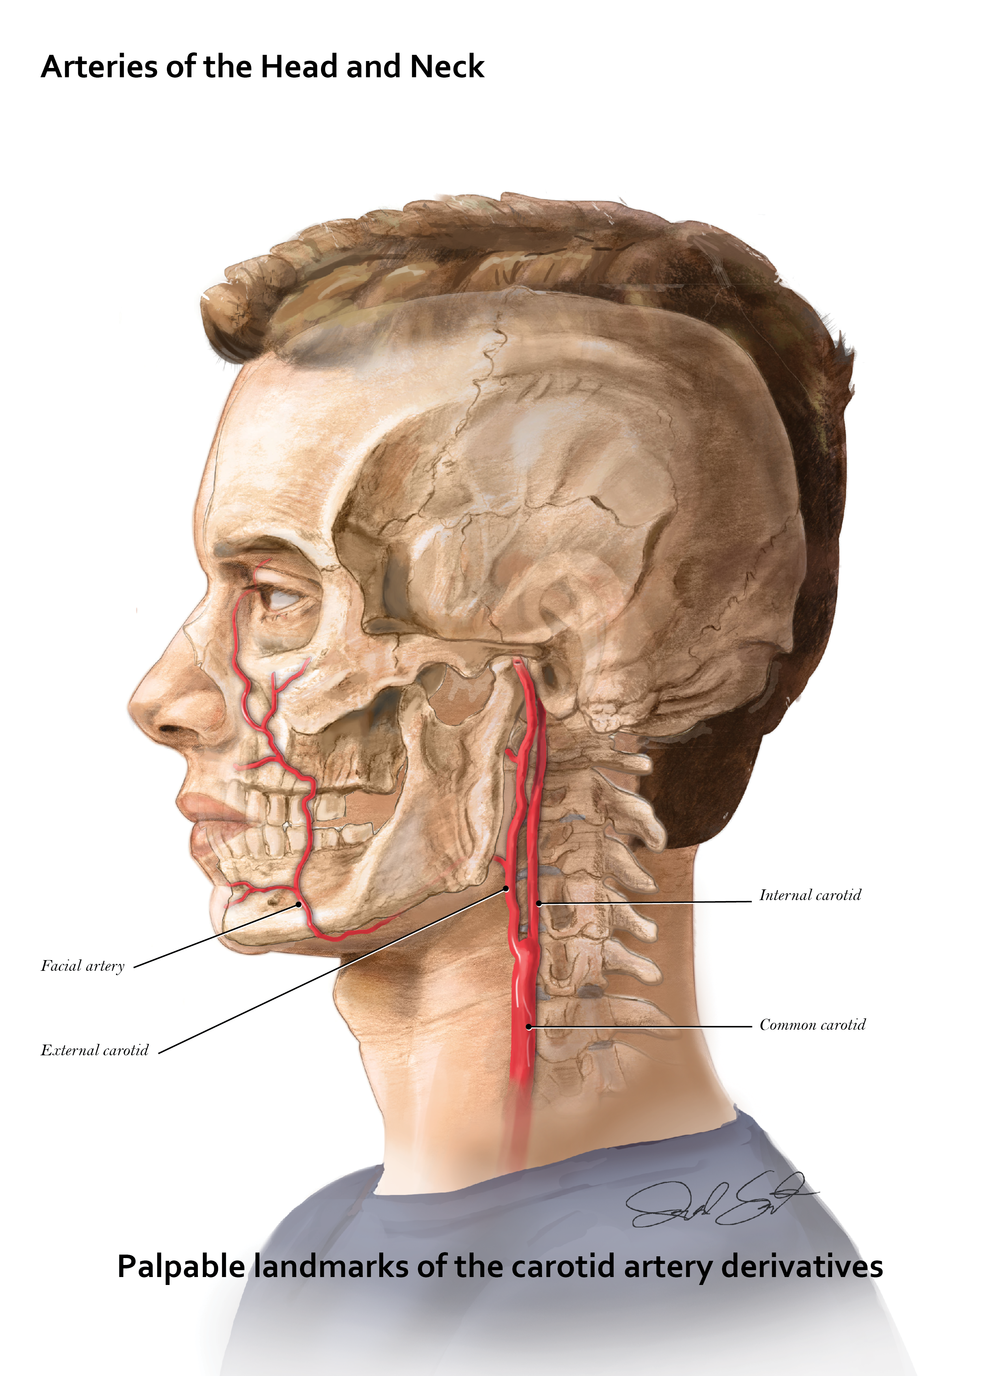 Arteries of the Head and Neck